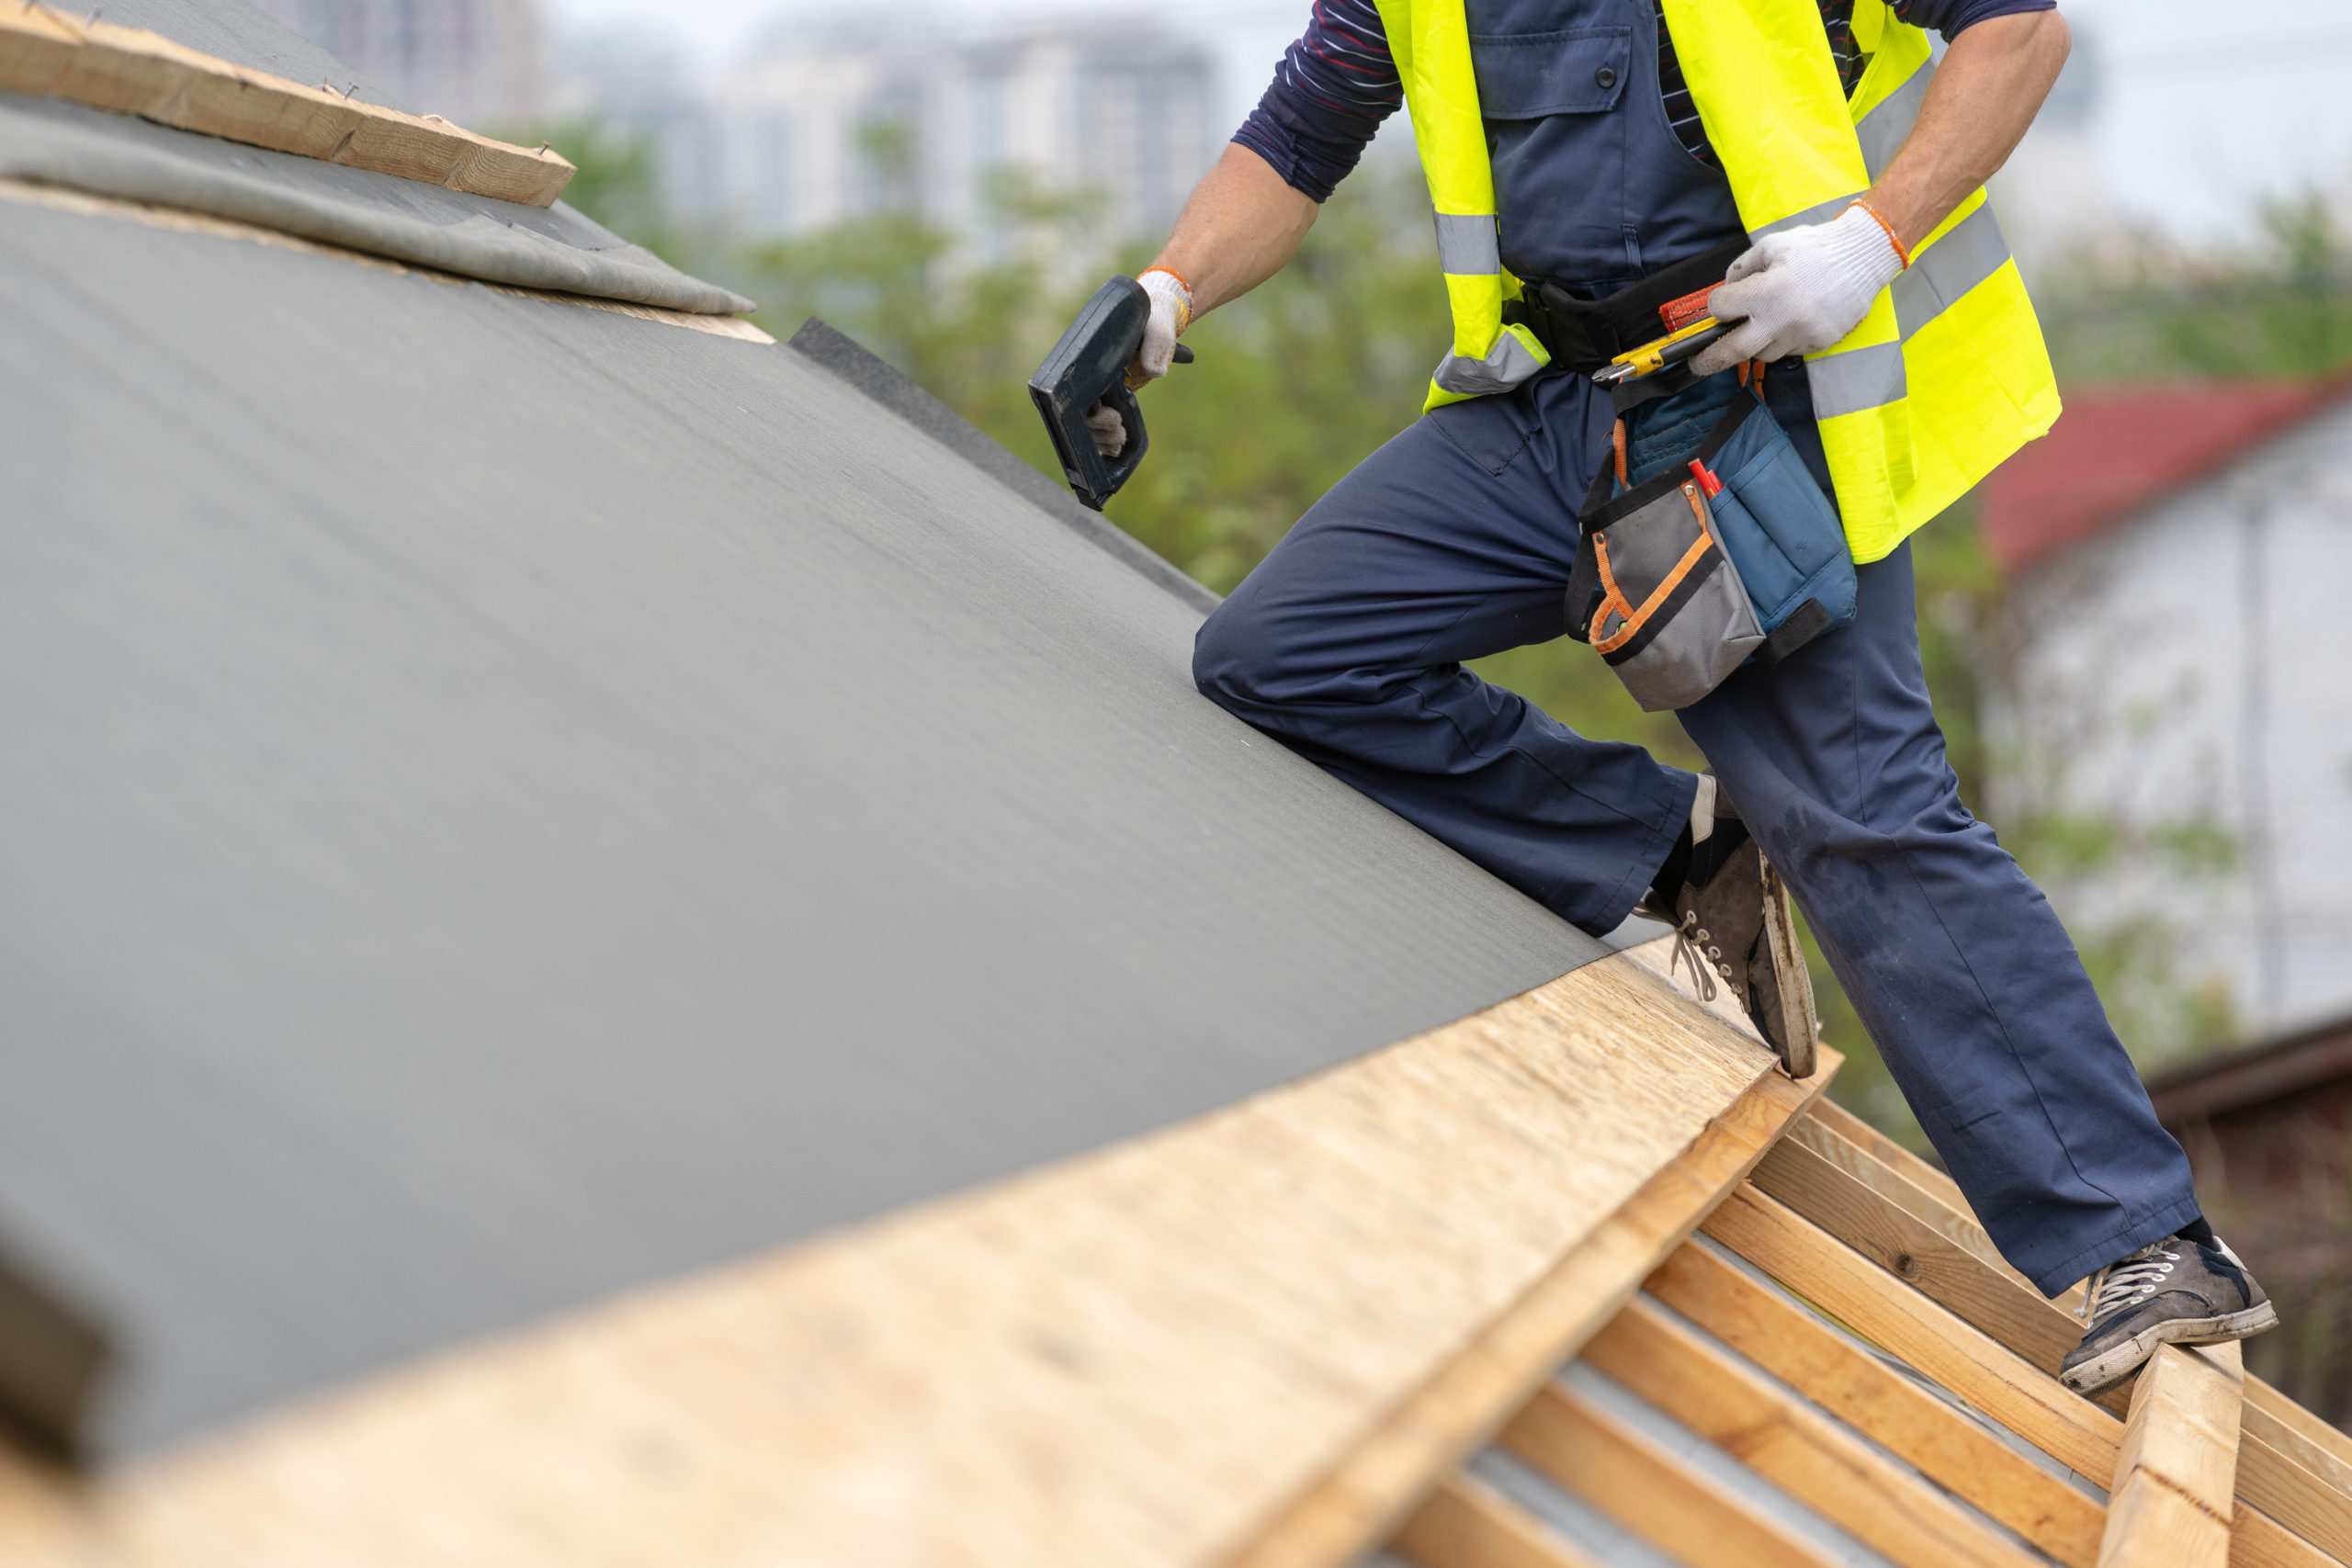 Things You Should Never Do to Your Roof